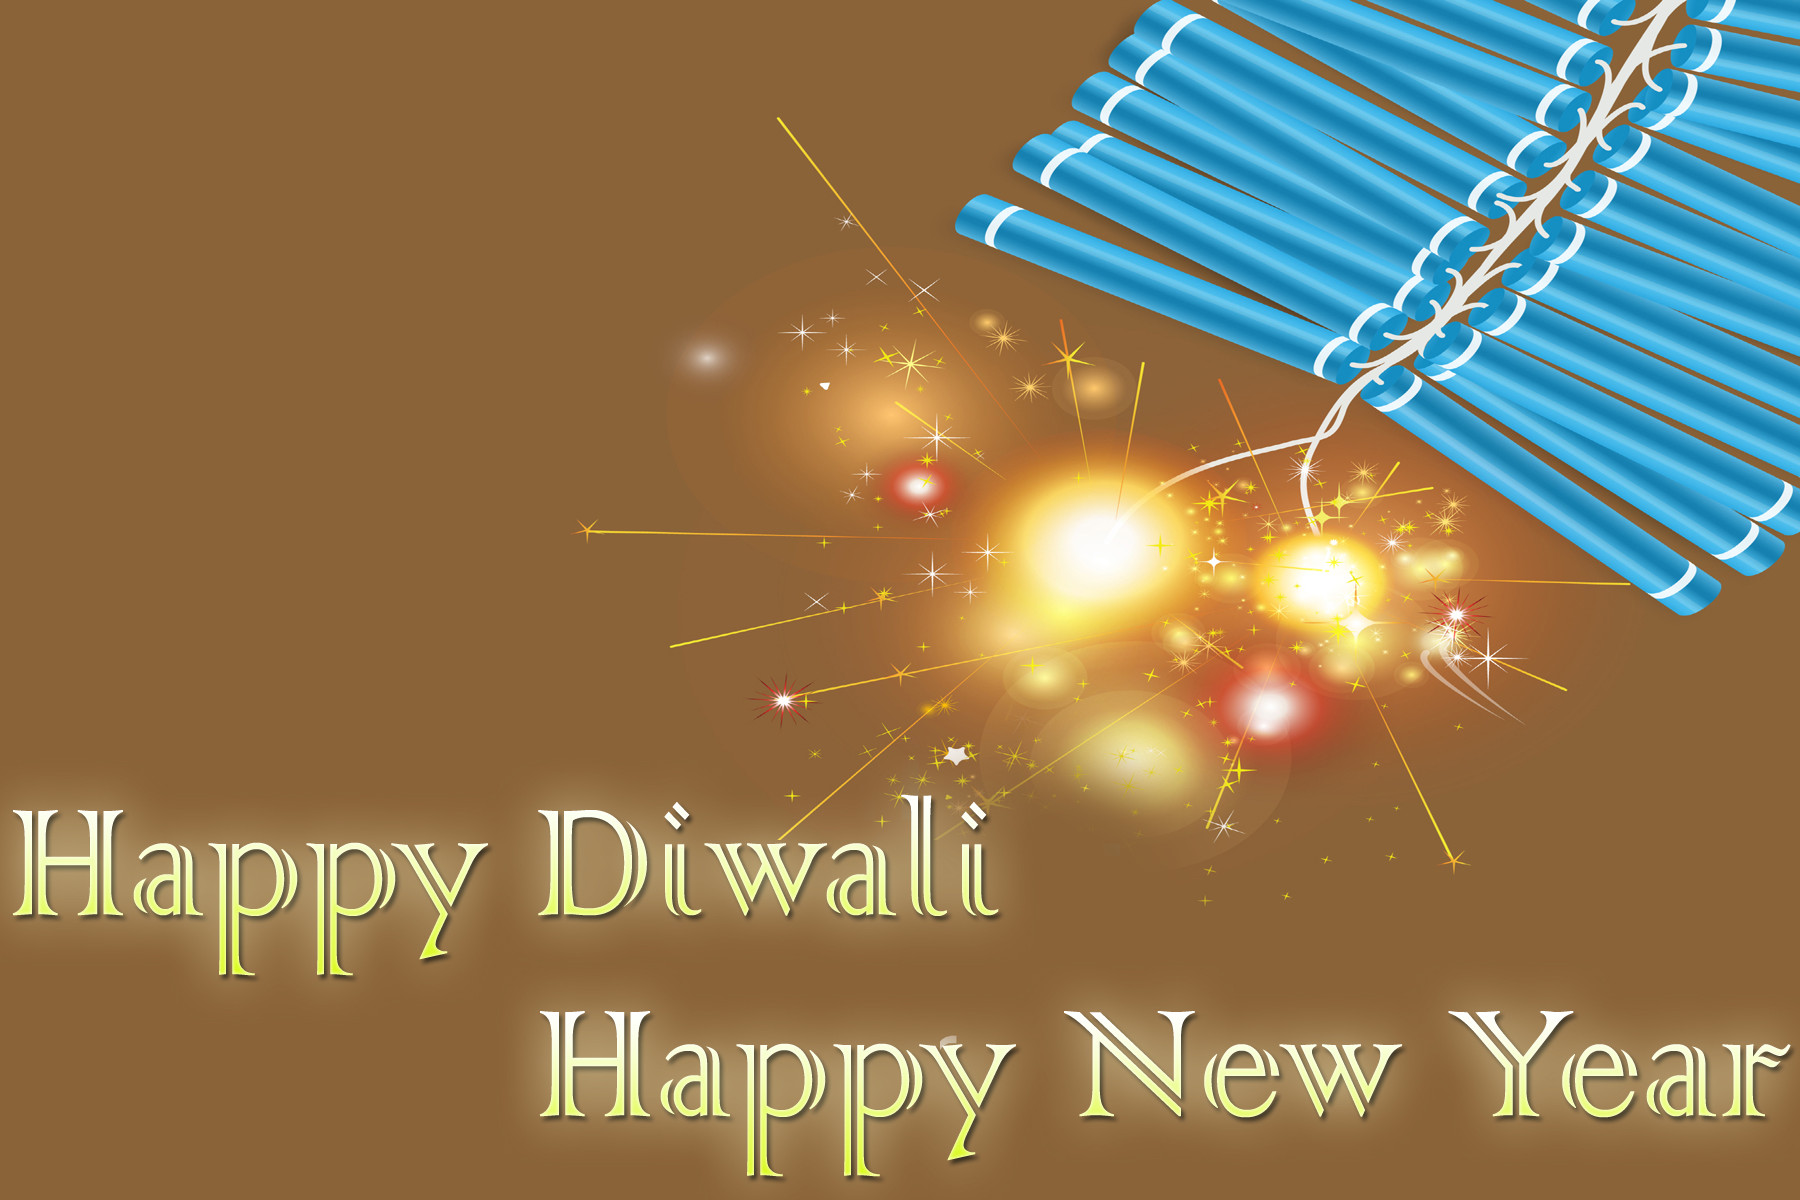 Happy Diwali Happy New Year Love Snd